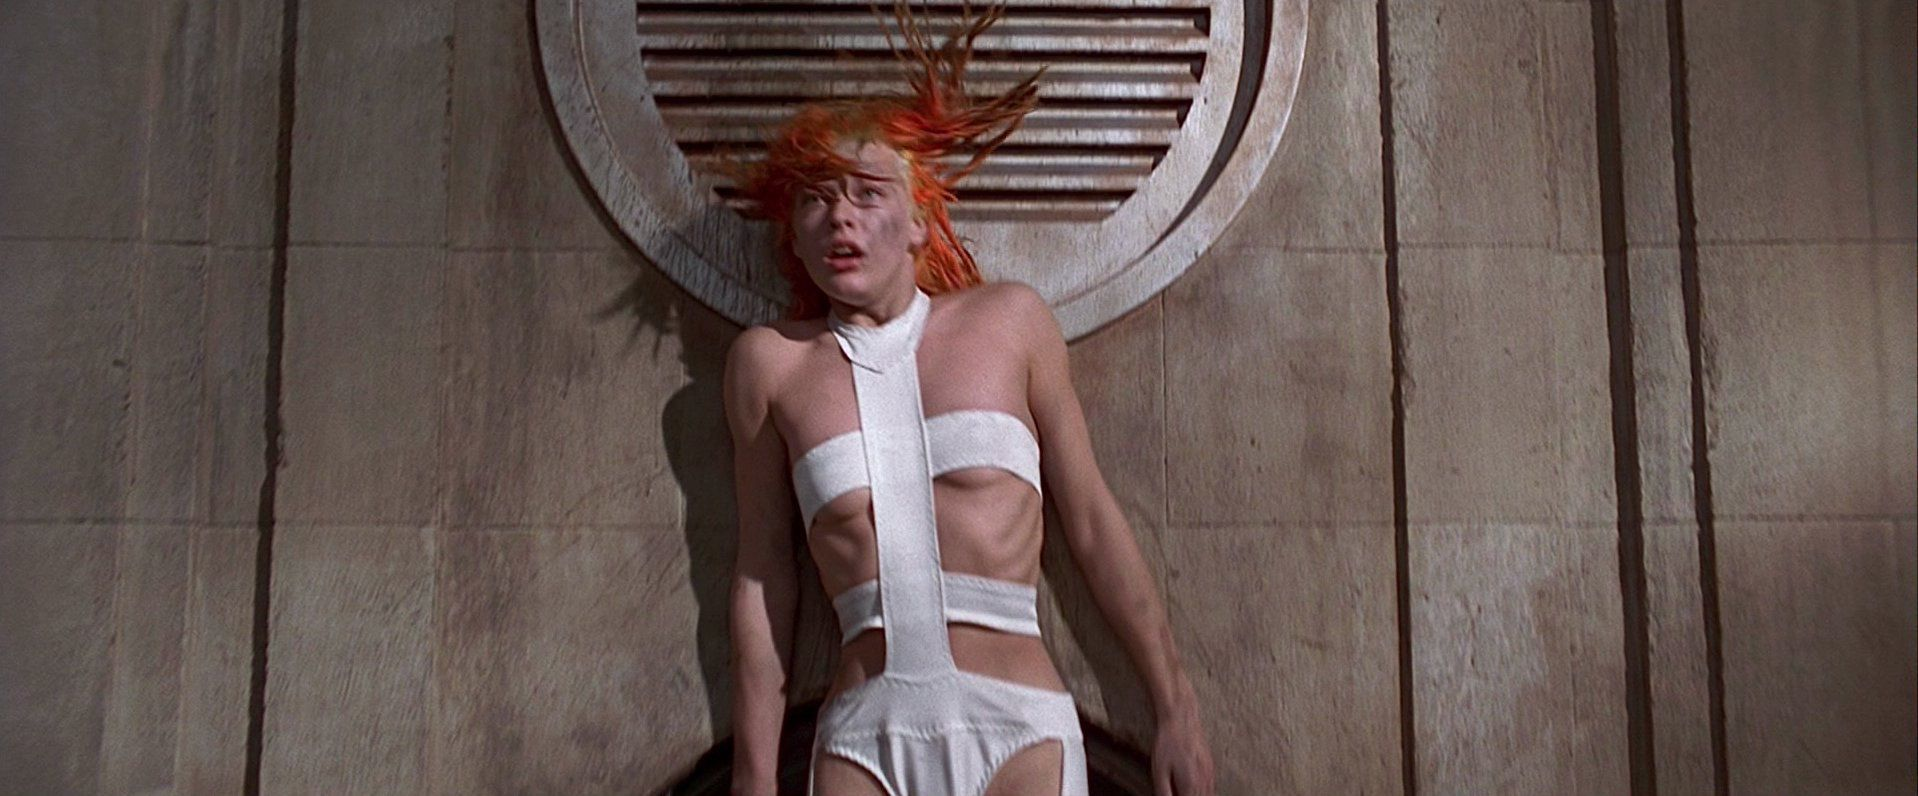 The Fifth Element - Milla Jovovich special idea for cosply